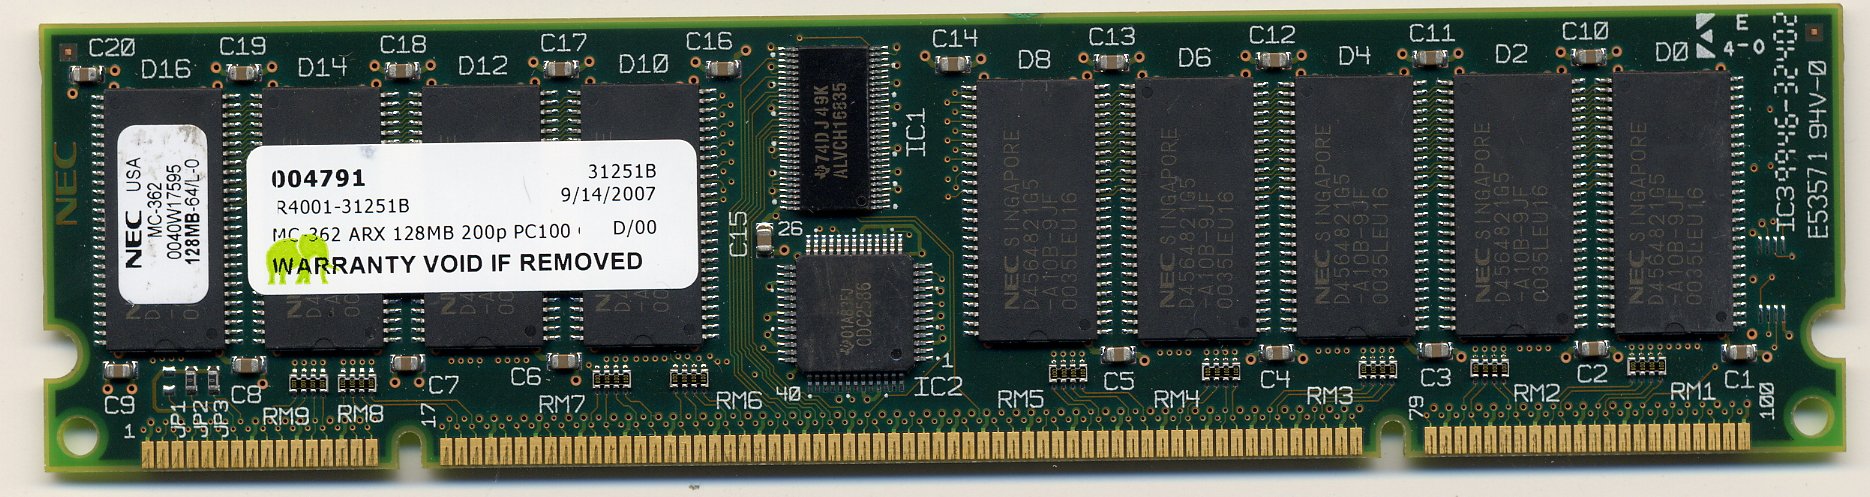 NEC MC-362 ARX 128MB 200p PC100 CL3 18c 8x8 Registered ECC SDRAM DIMM MEM-VIP250-128M-D